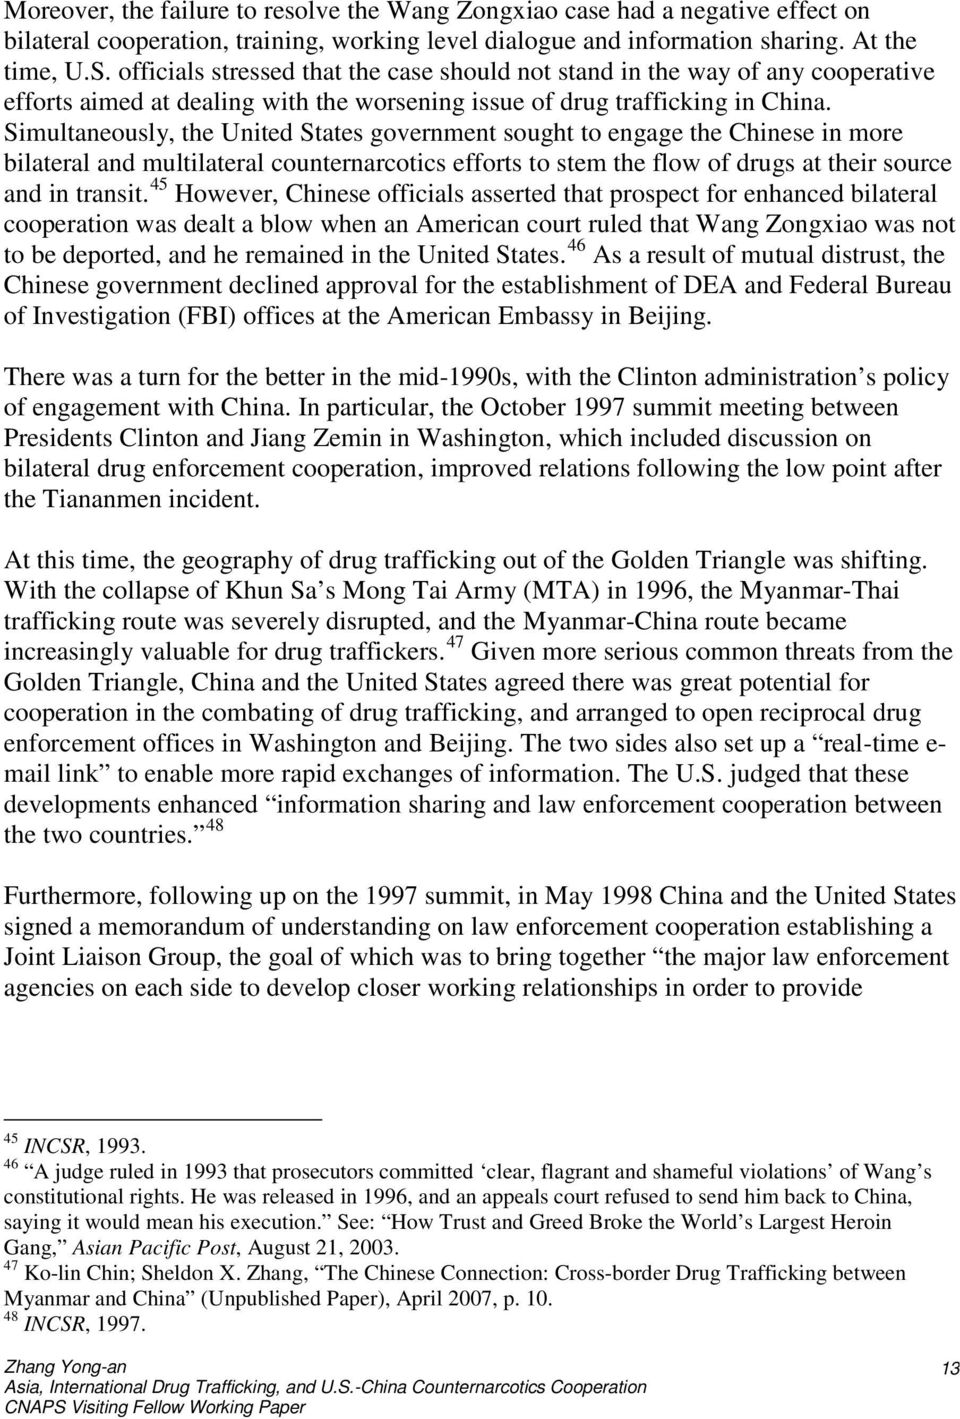 Simultaneously, the United States government sought to engage the Chinese in more bilateral and multilateral counternarcotics efforts to stem the flow of drugs at their source and in transit.